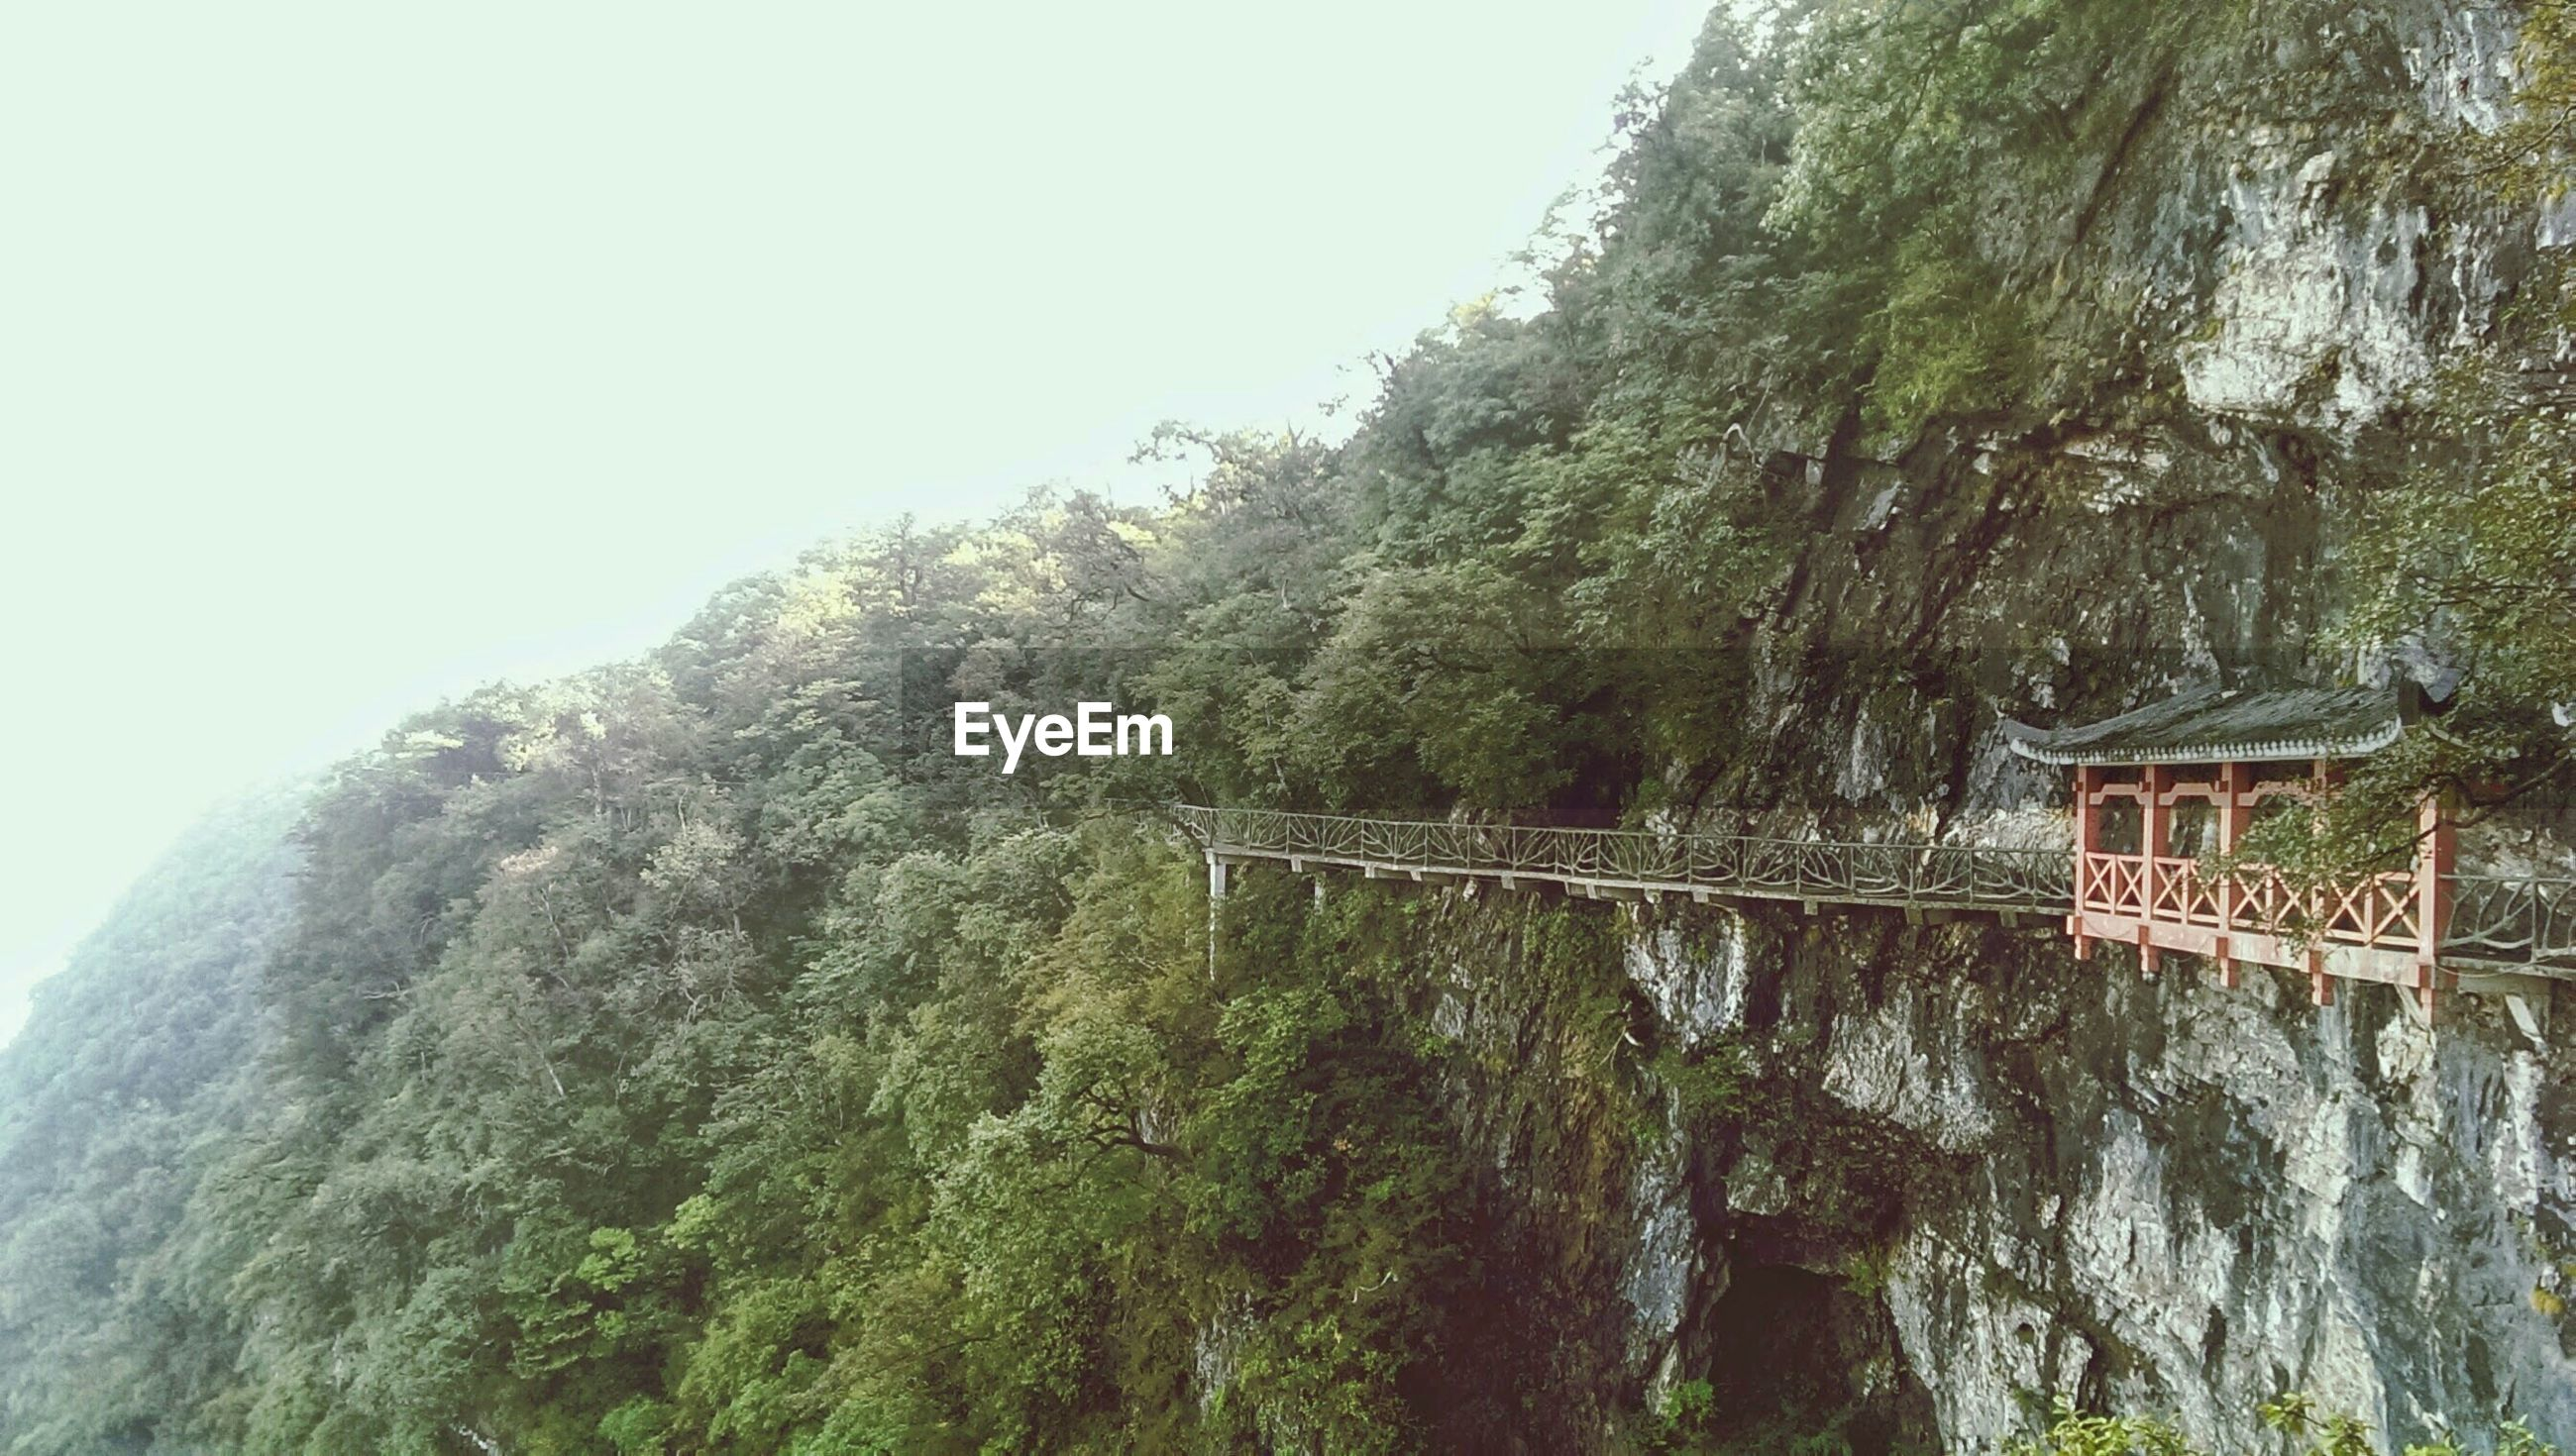 Footbridge attached to cliff face